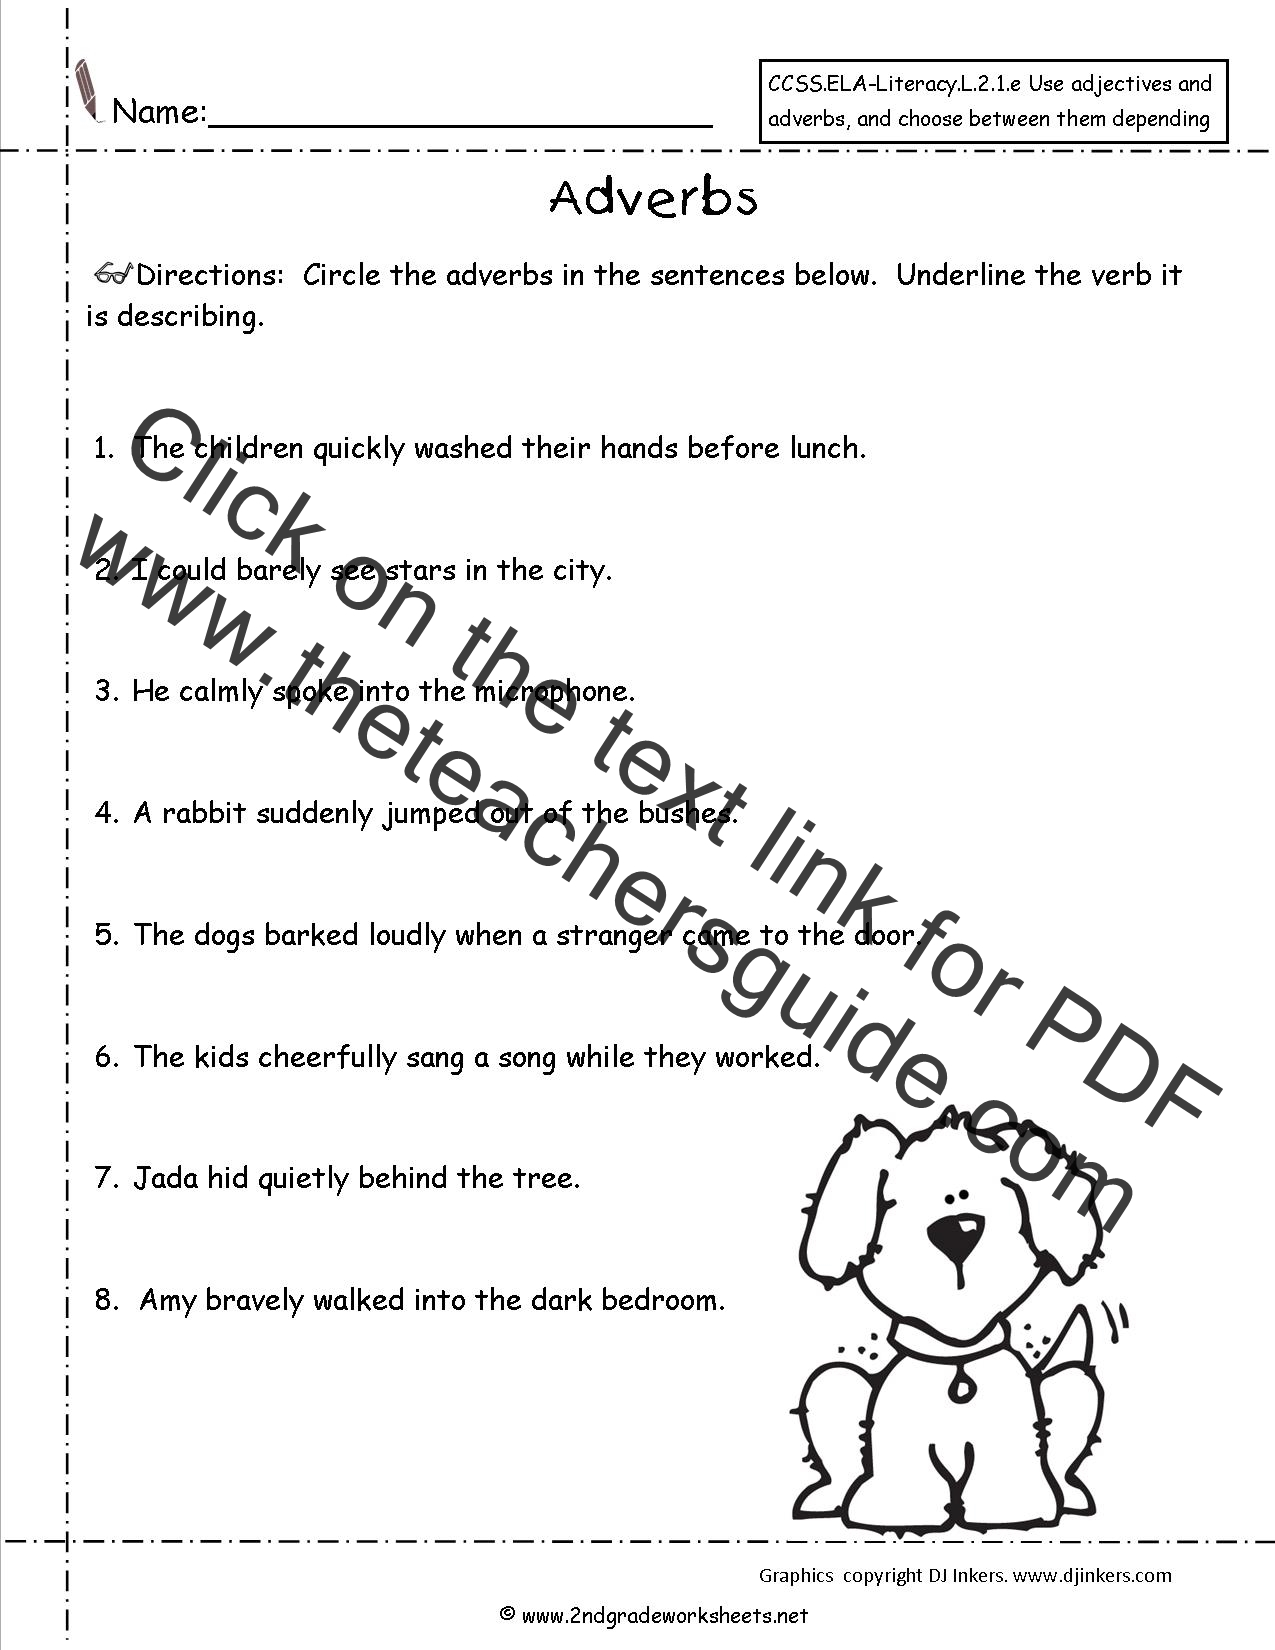 Adverbs Worksheet High School